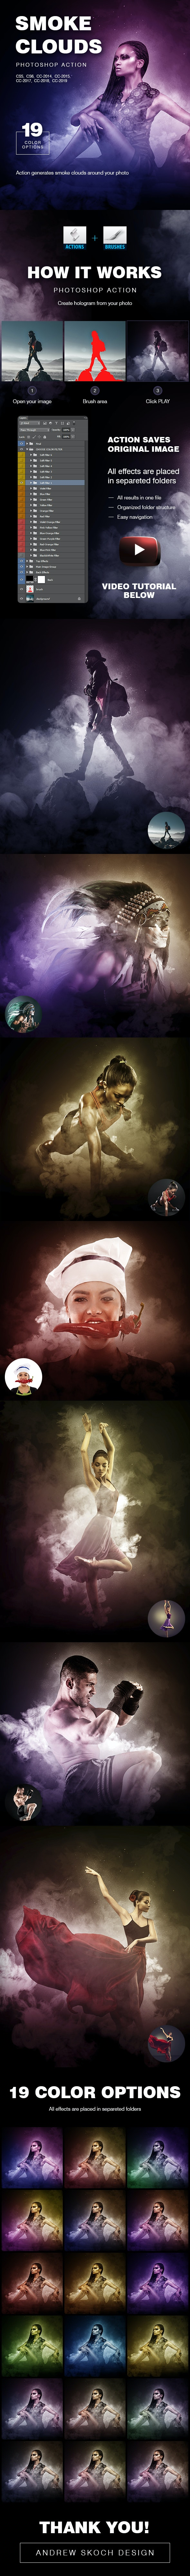 Smoke Clouds Photoshop Action - Photo Effects Actions